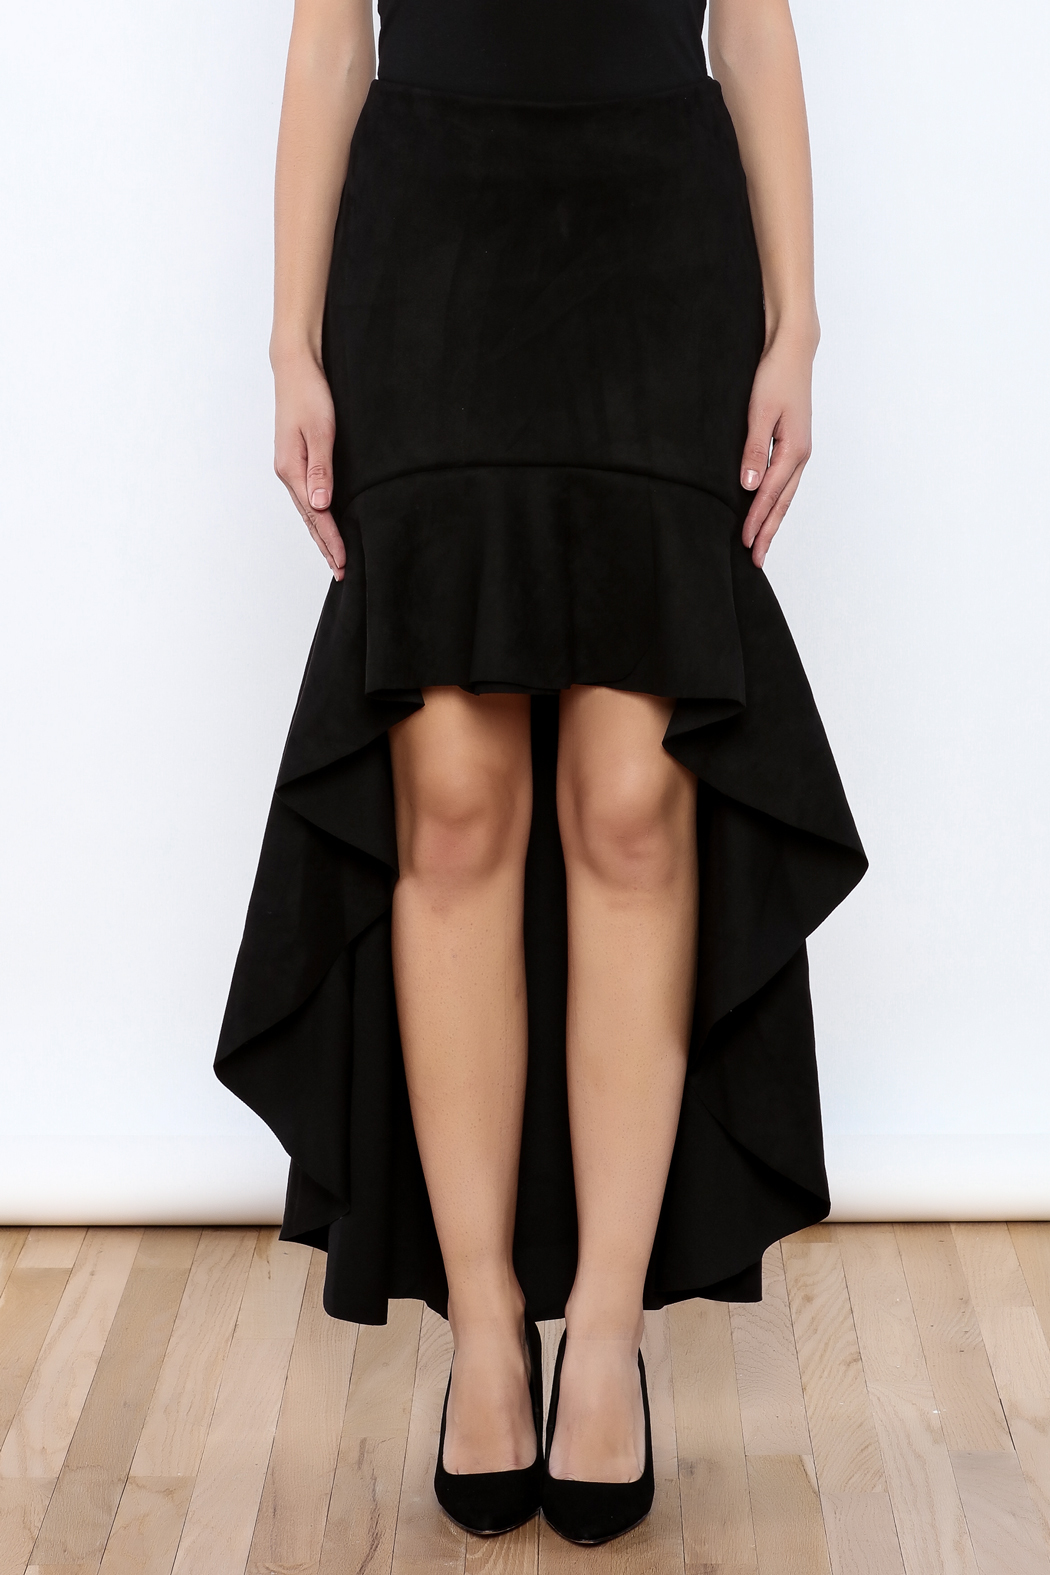 cq by cq Tango Skirt - Side Cropped Image